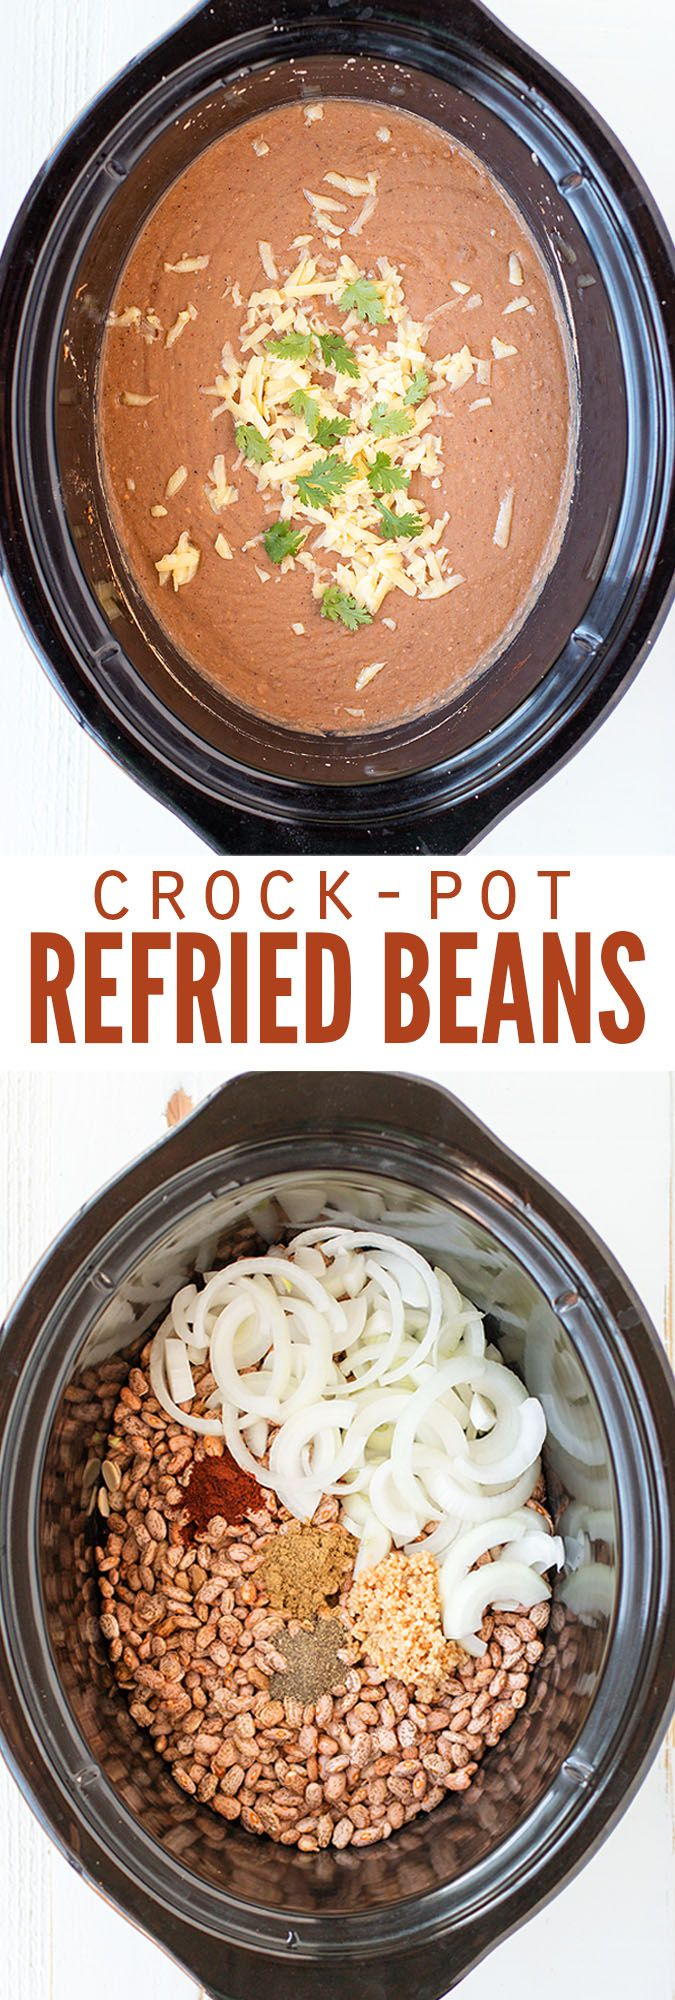 Crock pot refried beans shows how to make refried beans from scratch that taste authentic. Use dry or canned beans, or make refried black beans! :: DontWastetheCrumbs.com